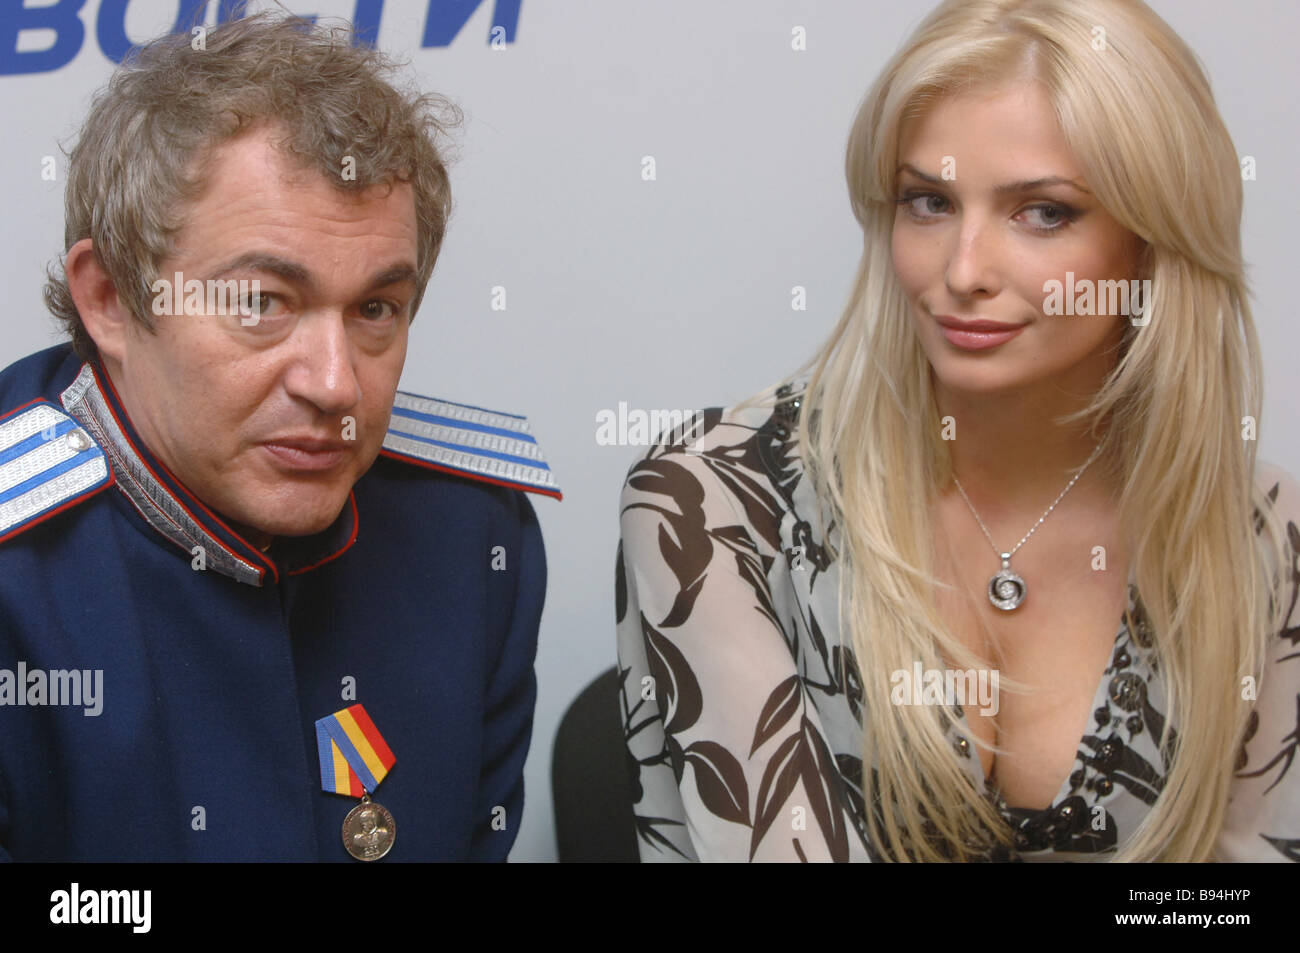 Dmitry Dibrov is cheating on his wife 18.03.2010 32